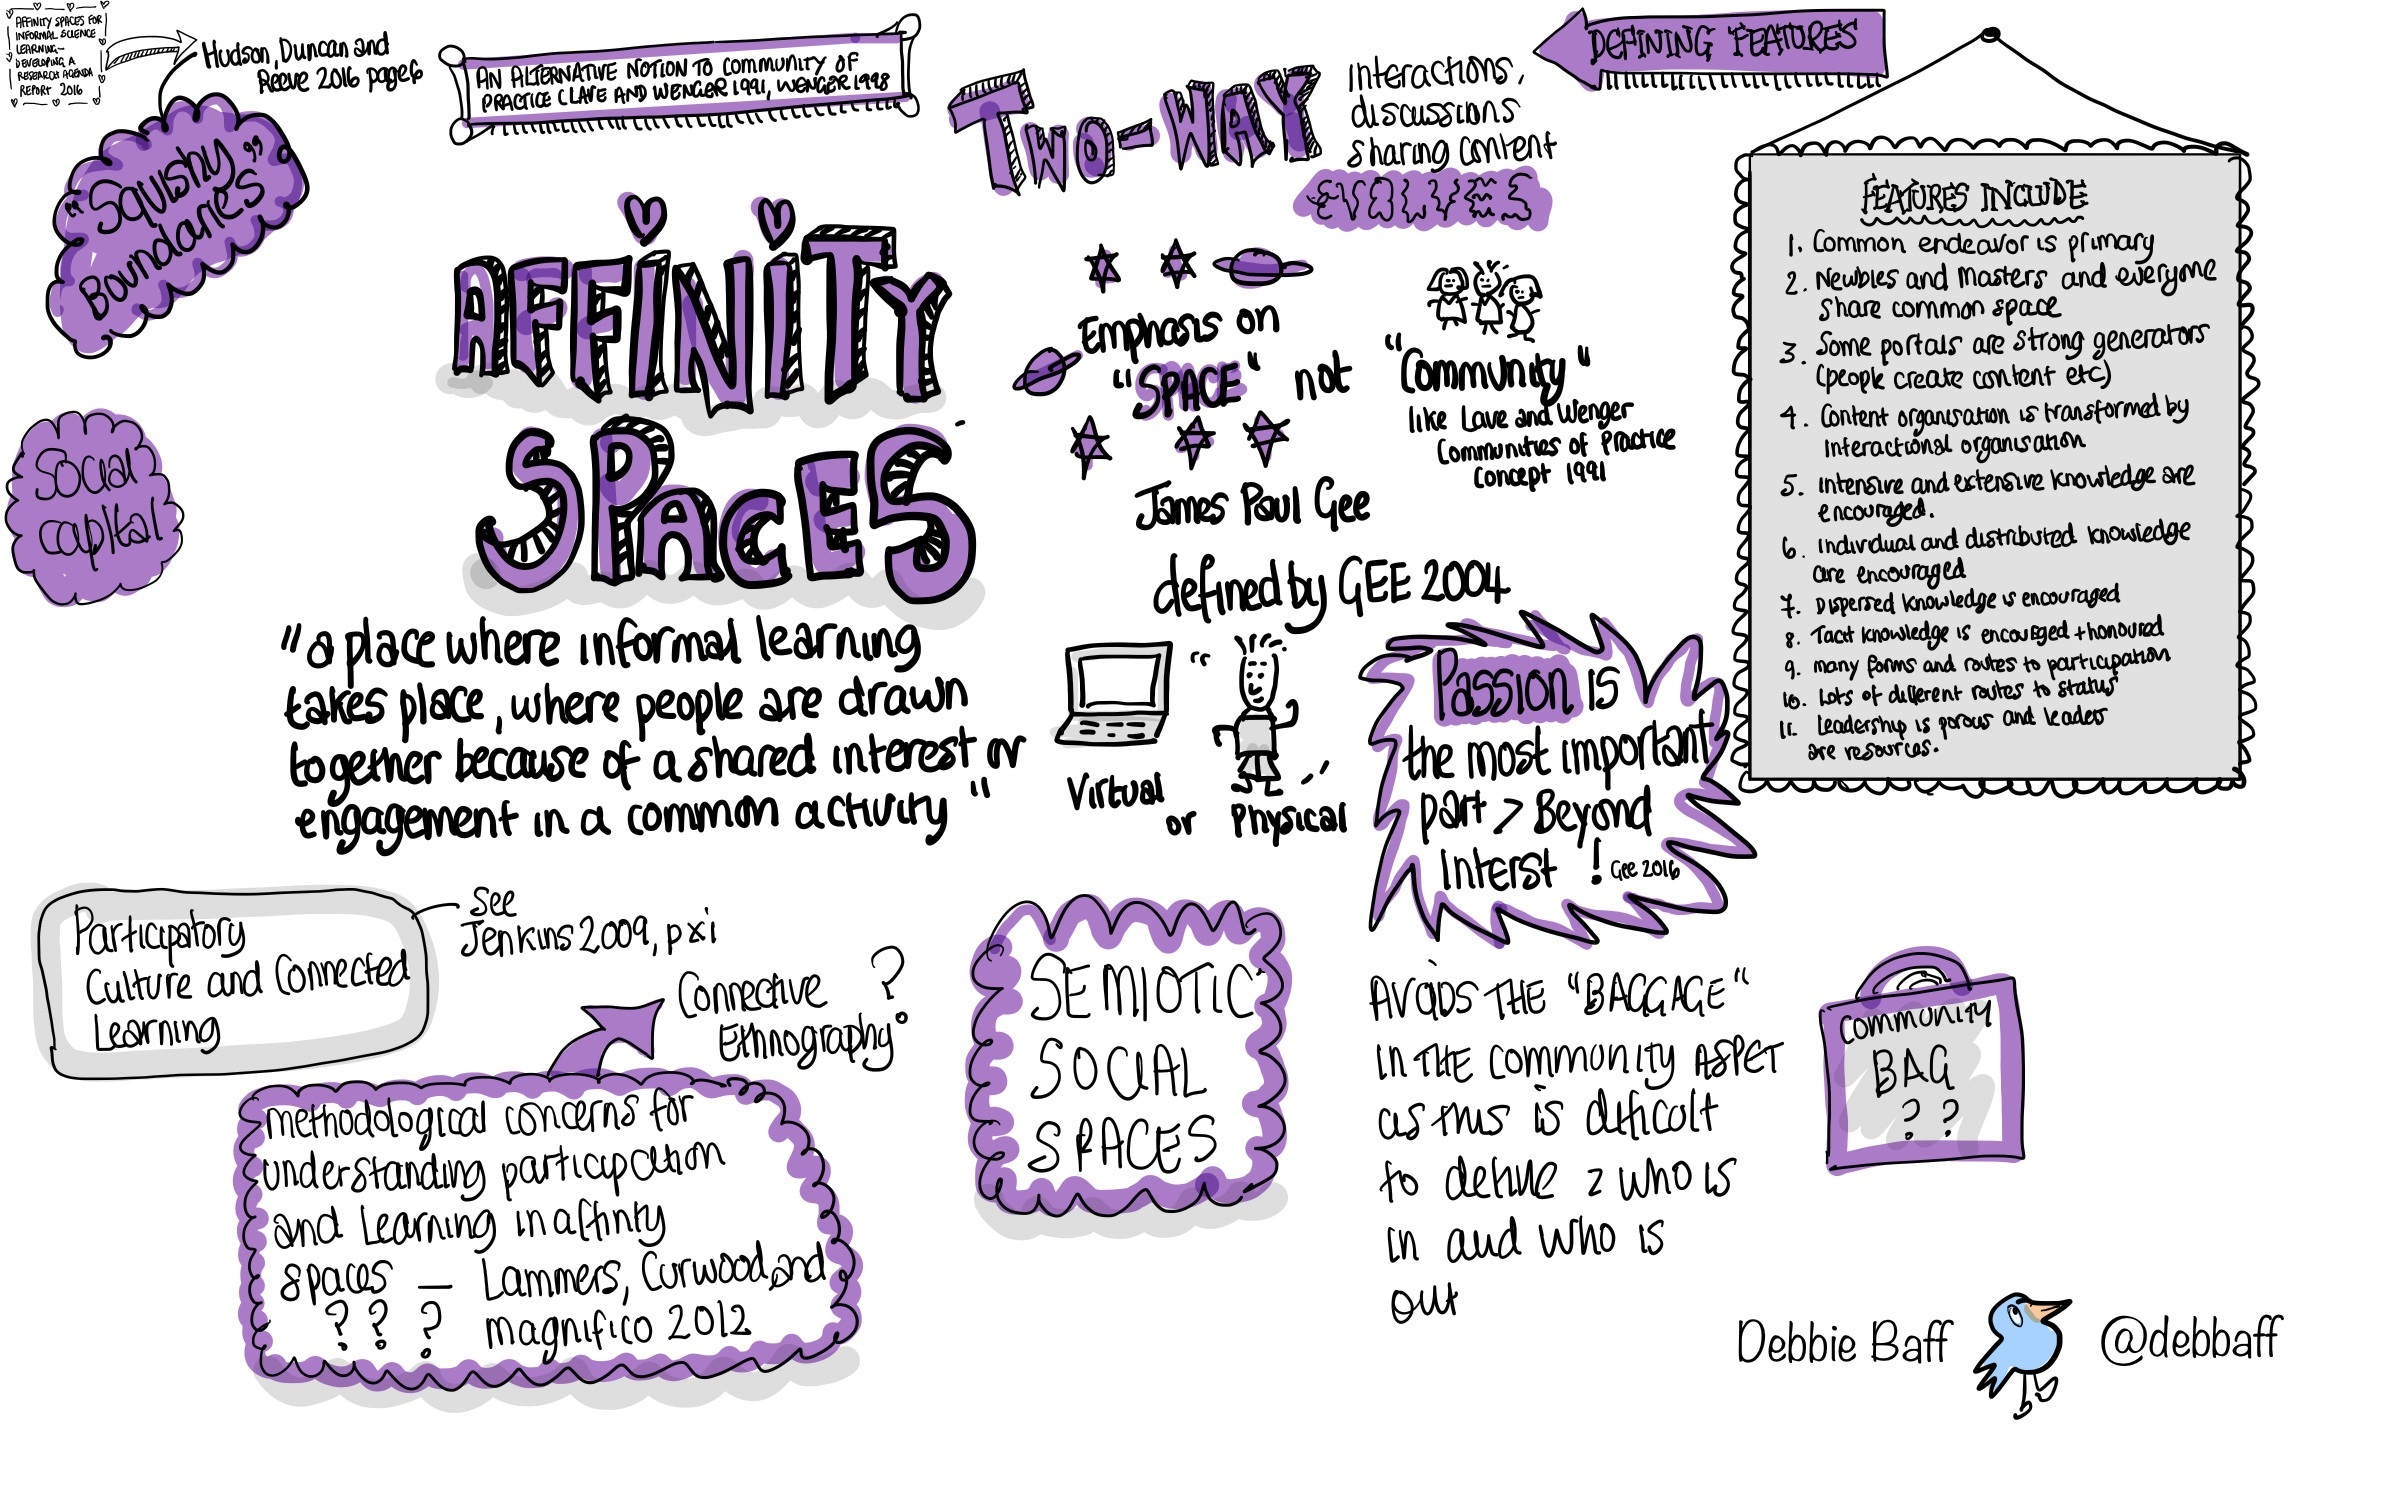 Affinity Spaces